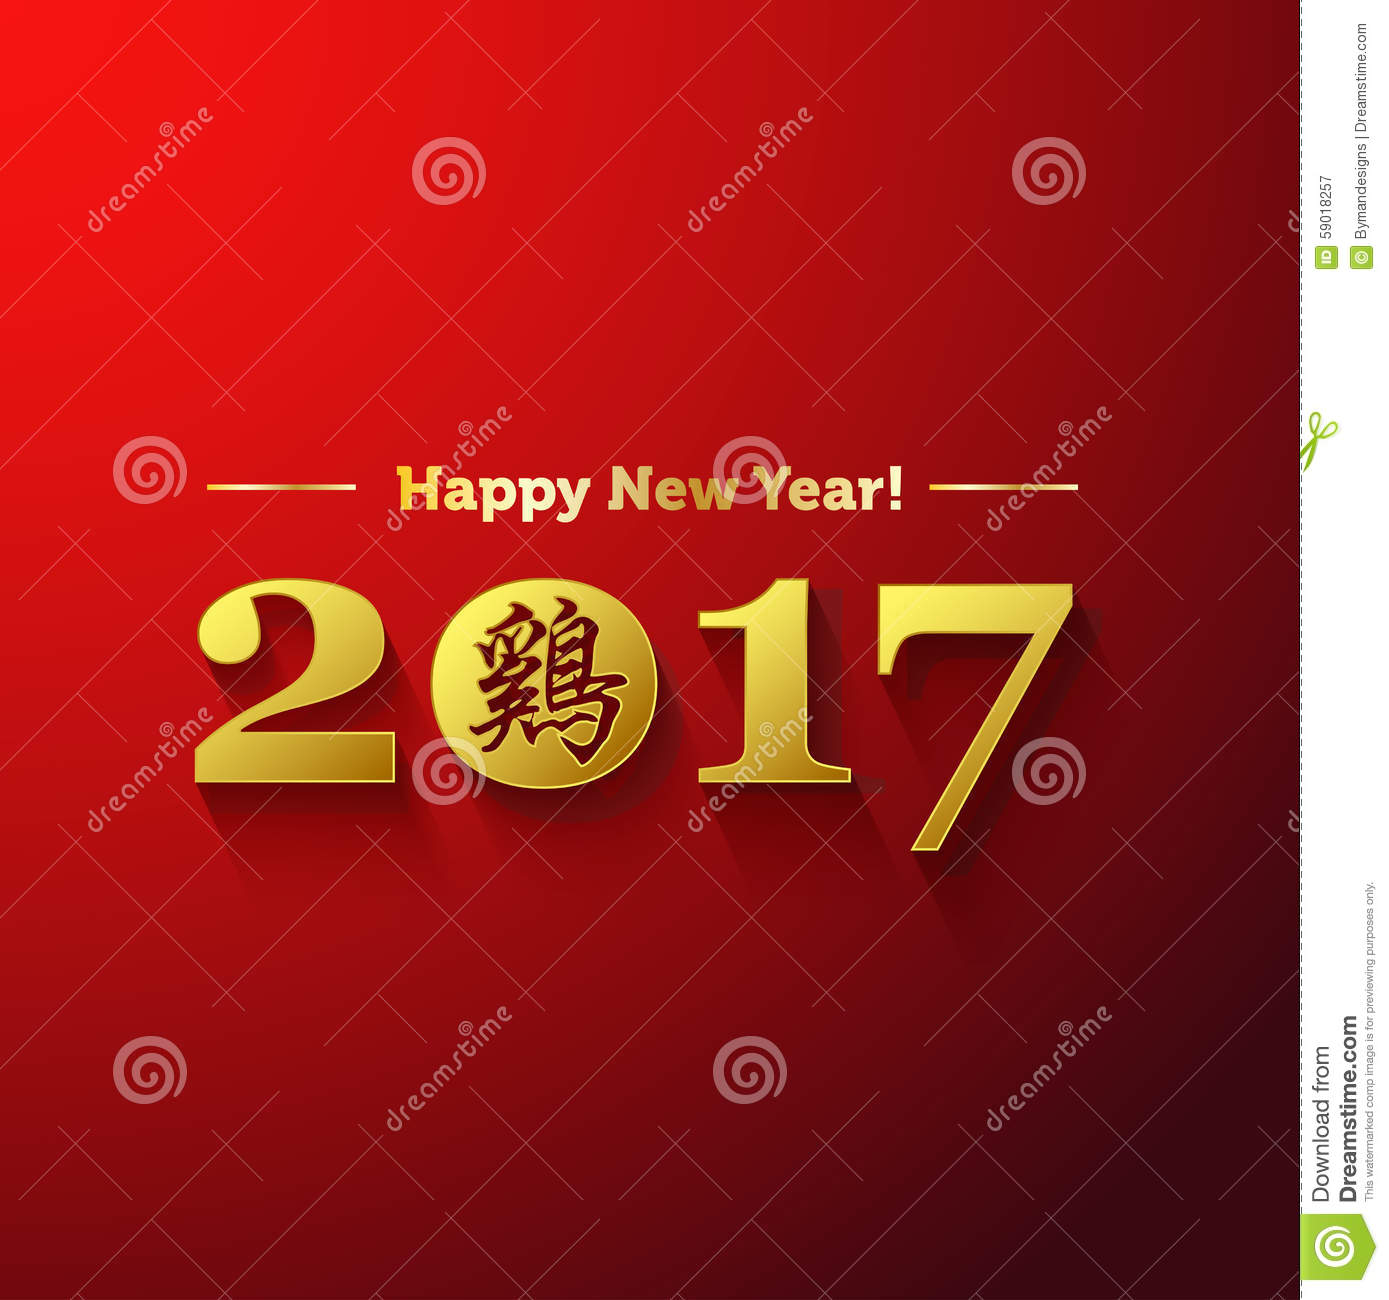 2017 New Year With Chinese Symbol Of Roosterar Of Rooster Stock